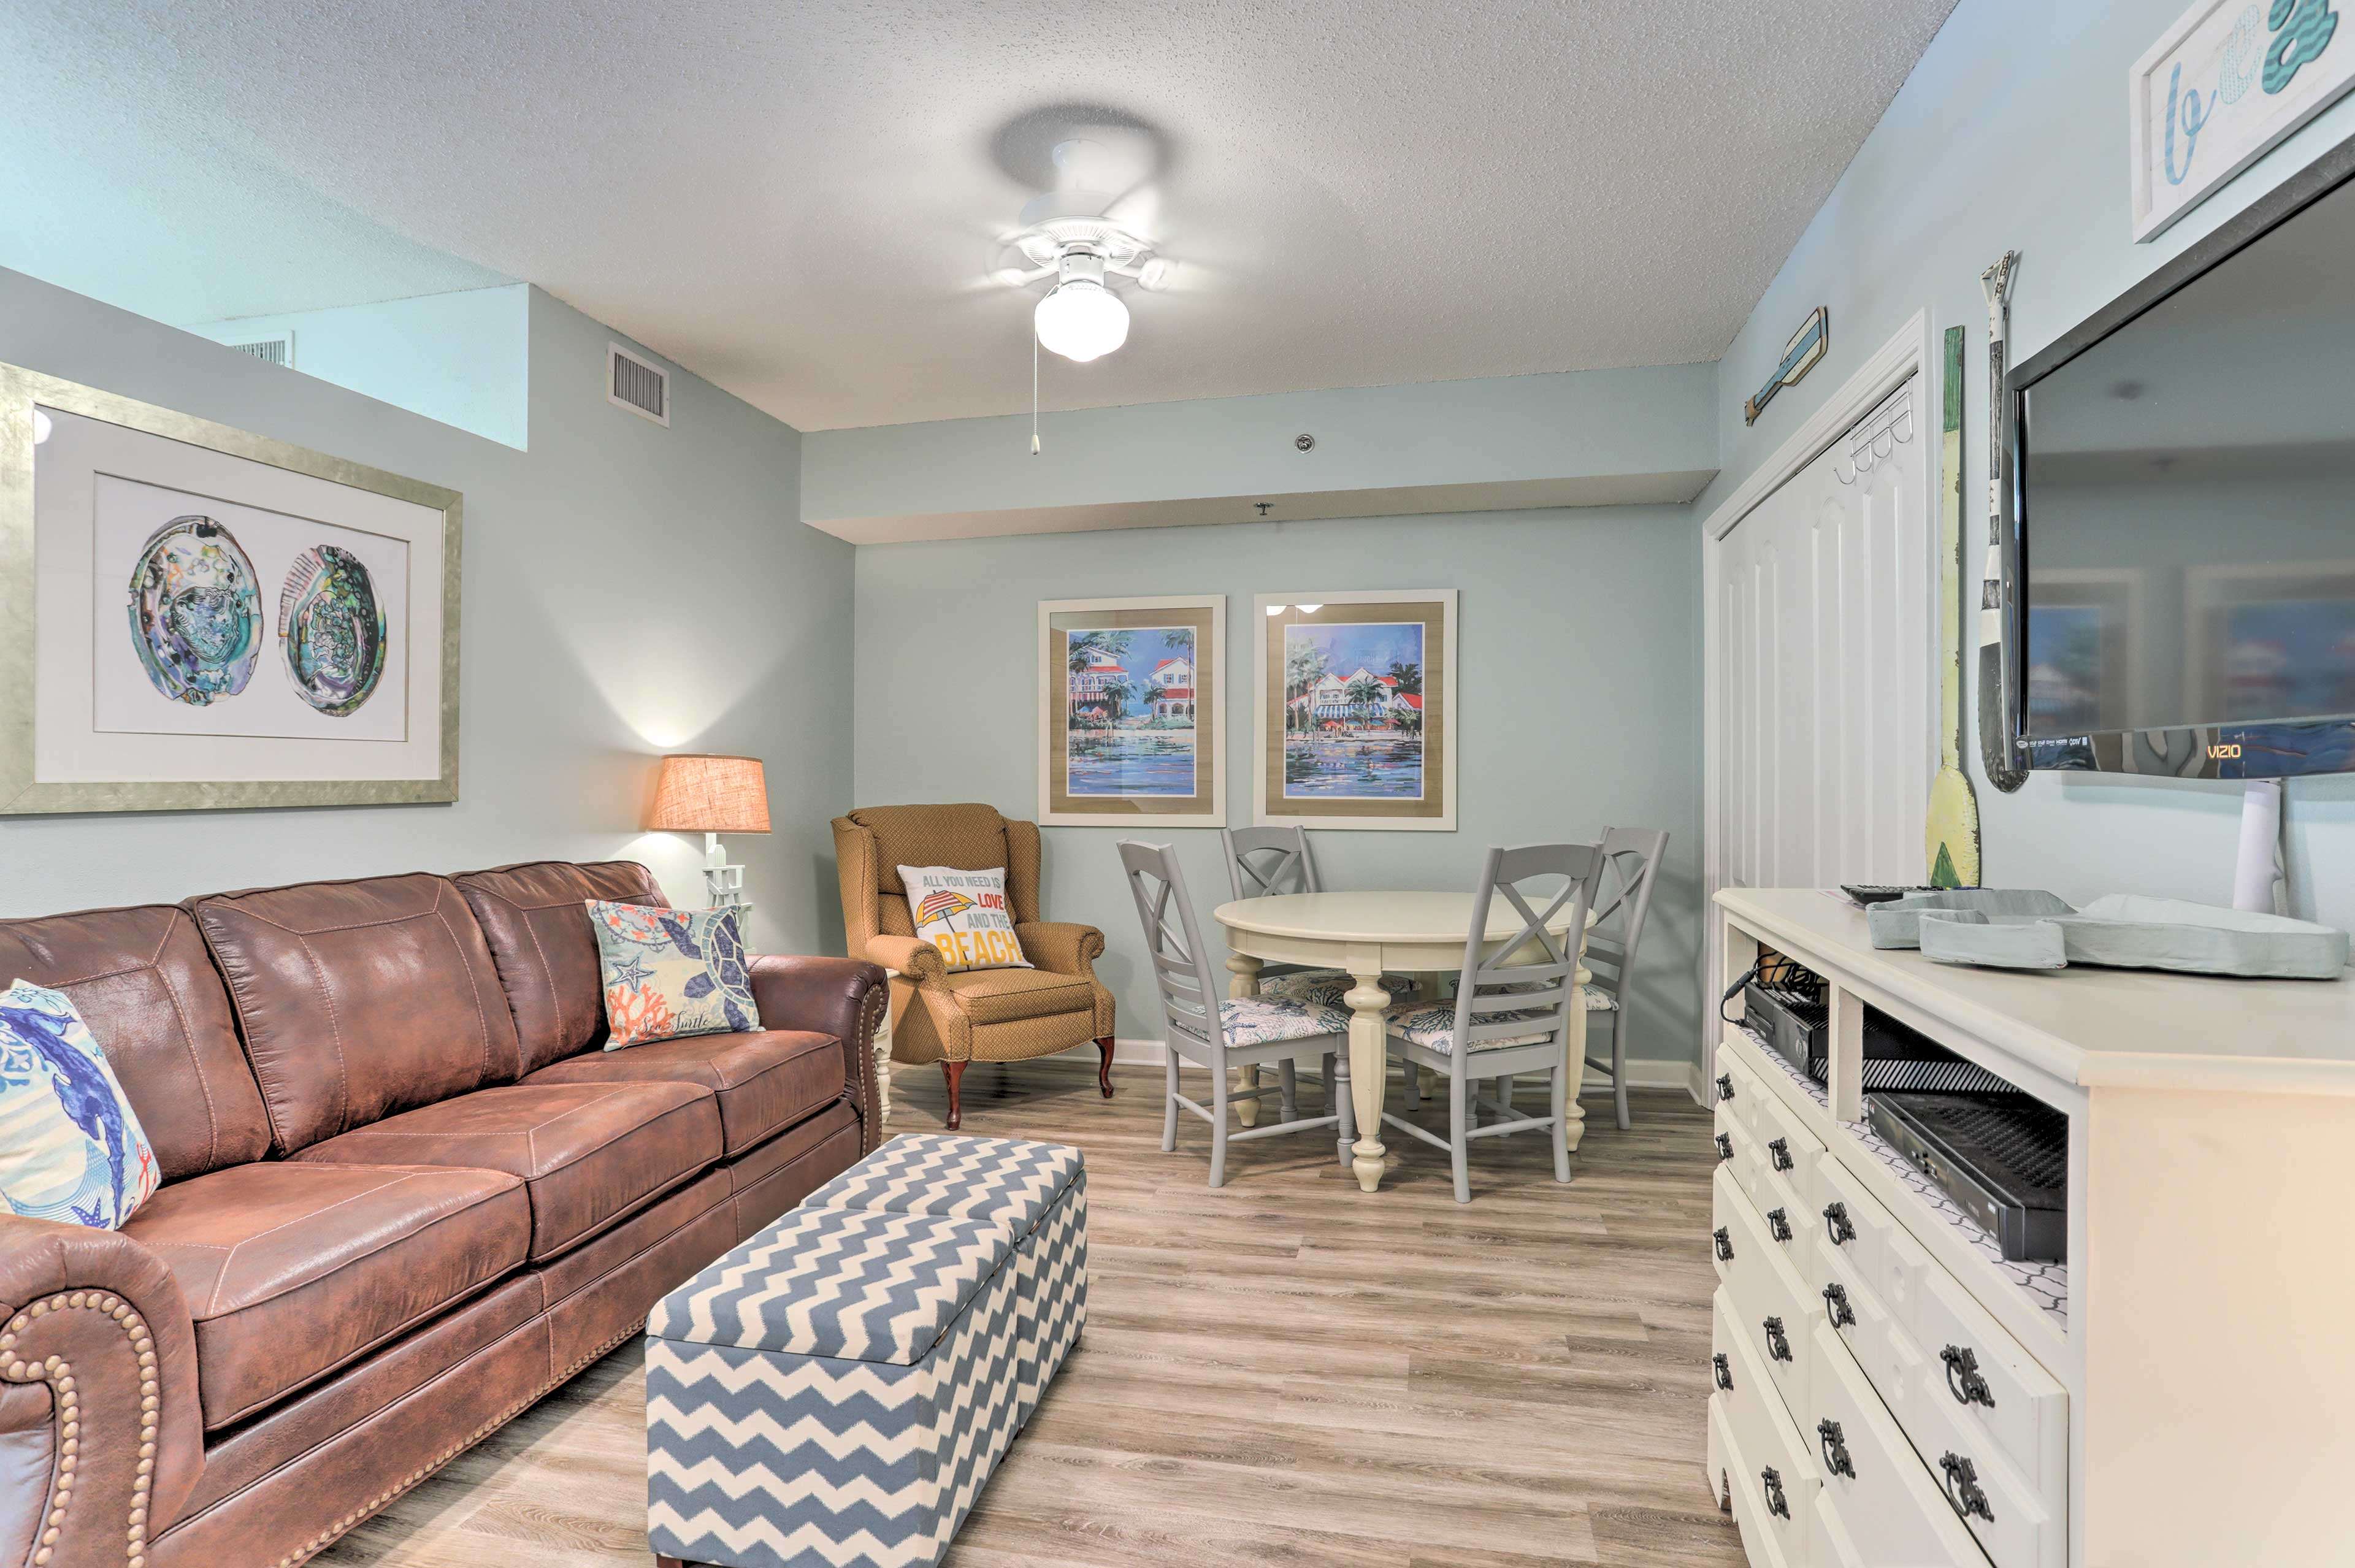 An additional 'bonus room' is featured in this condo as well.